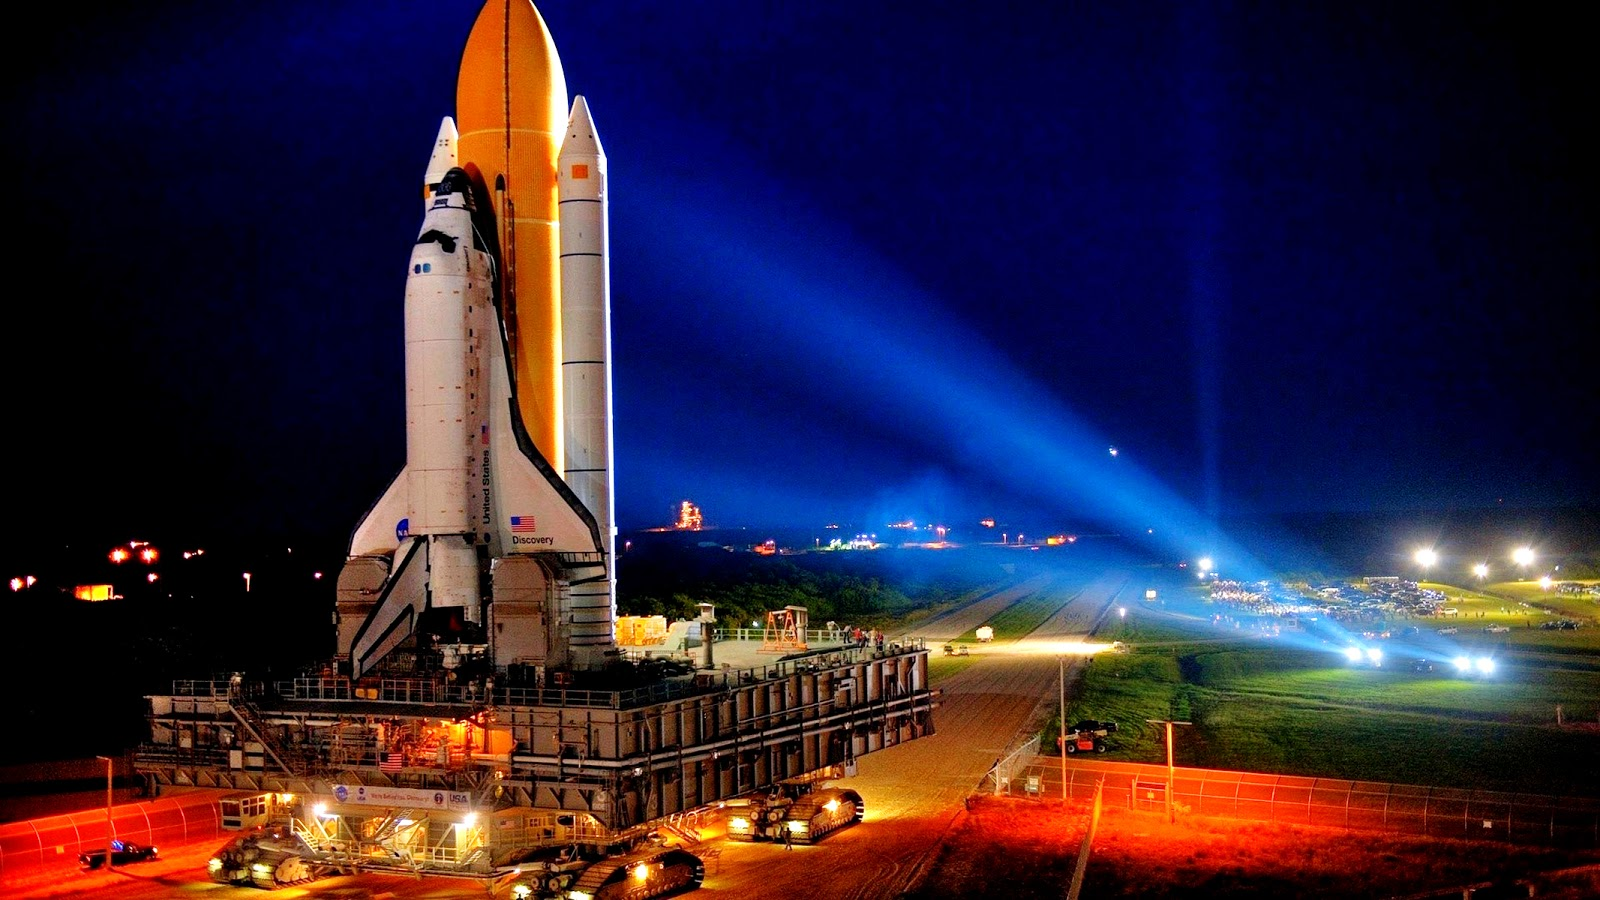 space shuttle discovery launch wallpapers - Discovery Image Gallery Nasa